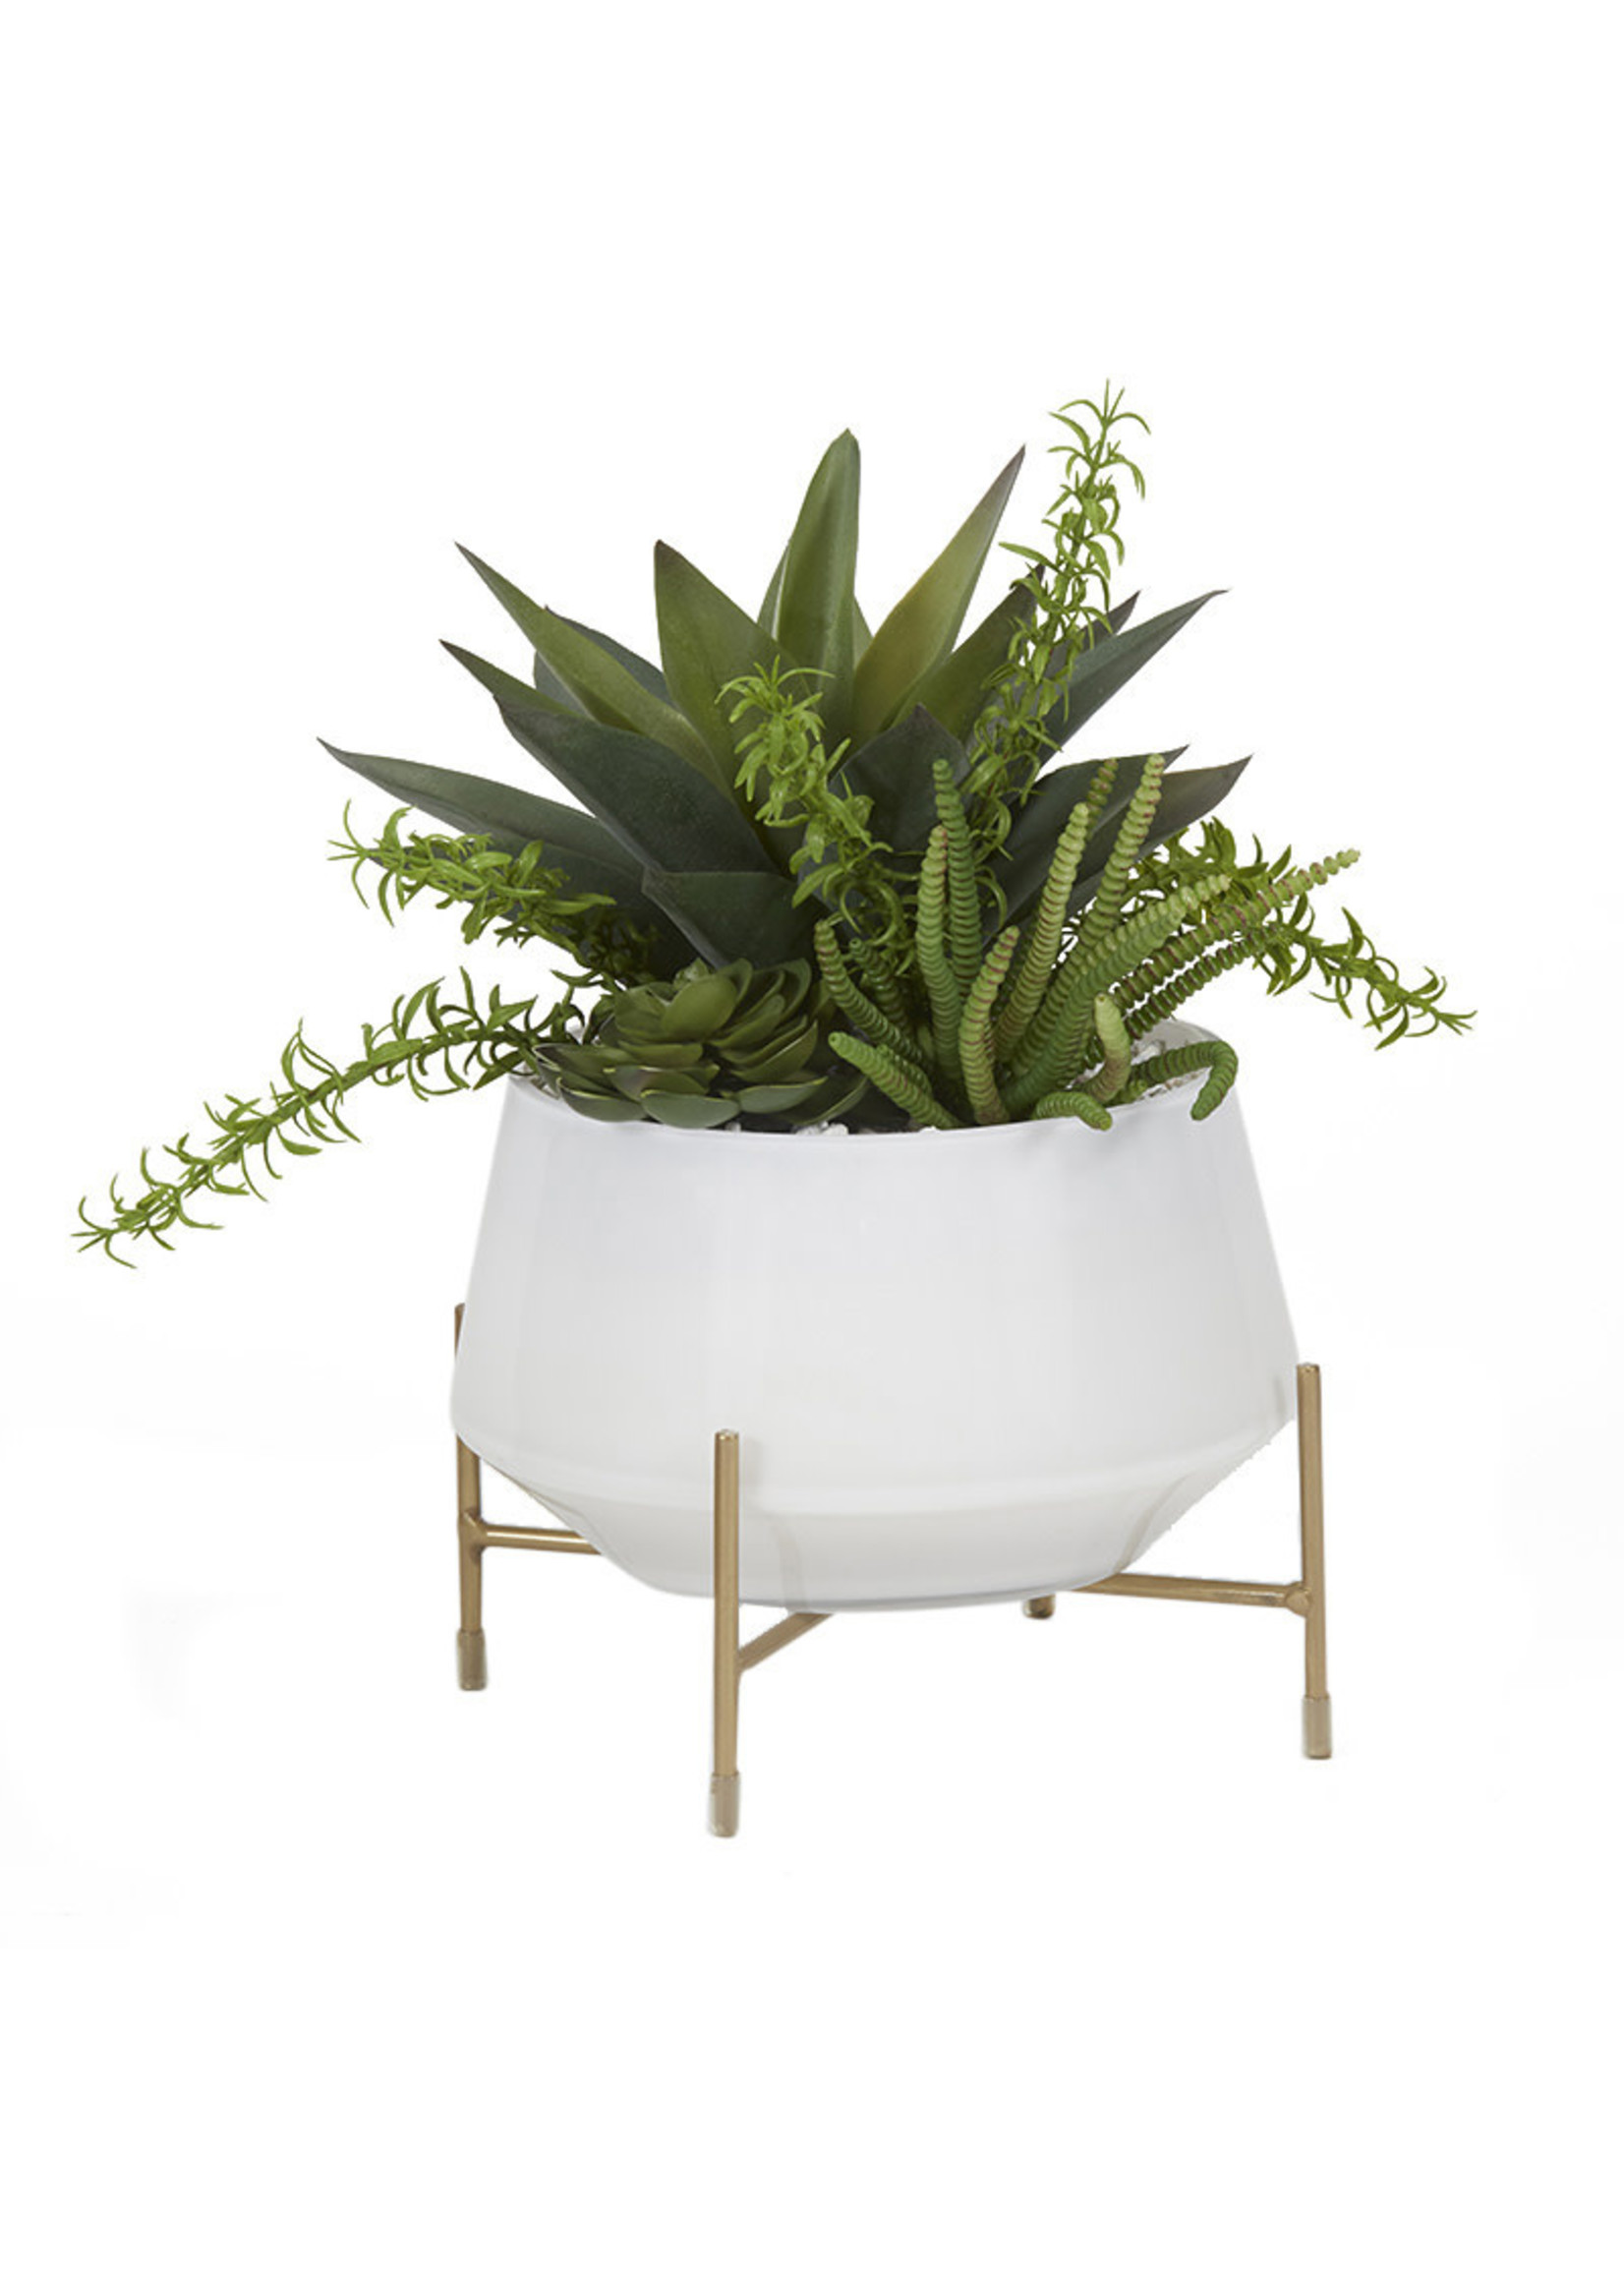 ALOE AND SUCCULENTS IN WHITE GLASS BOWL W/ STAND